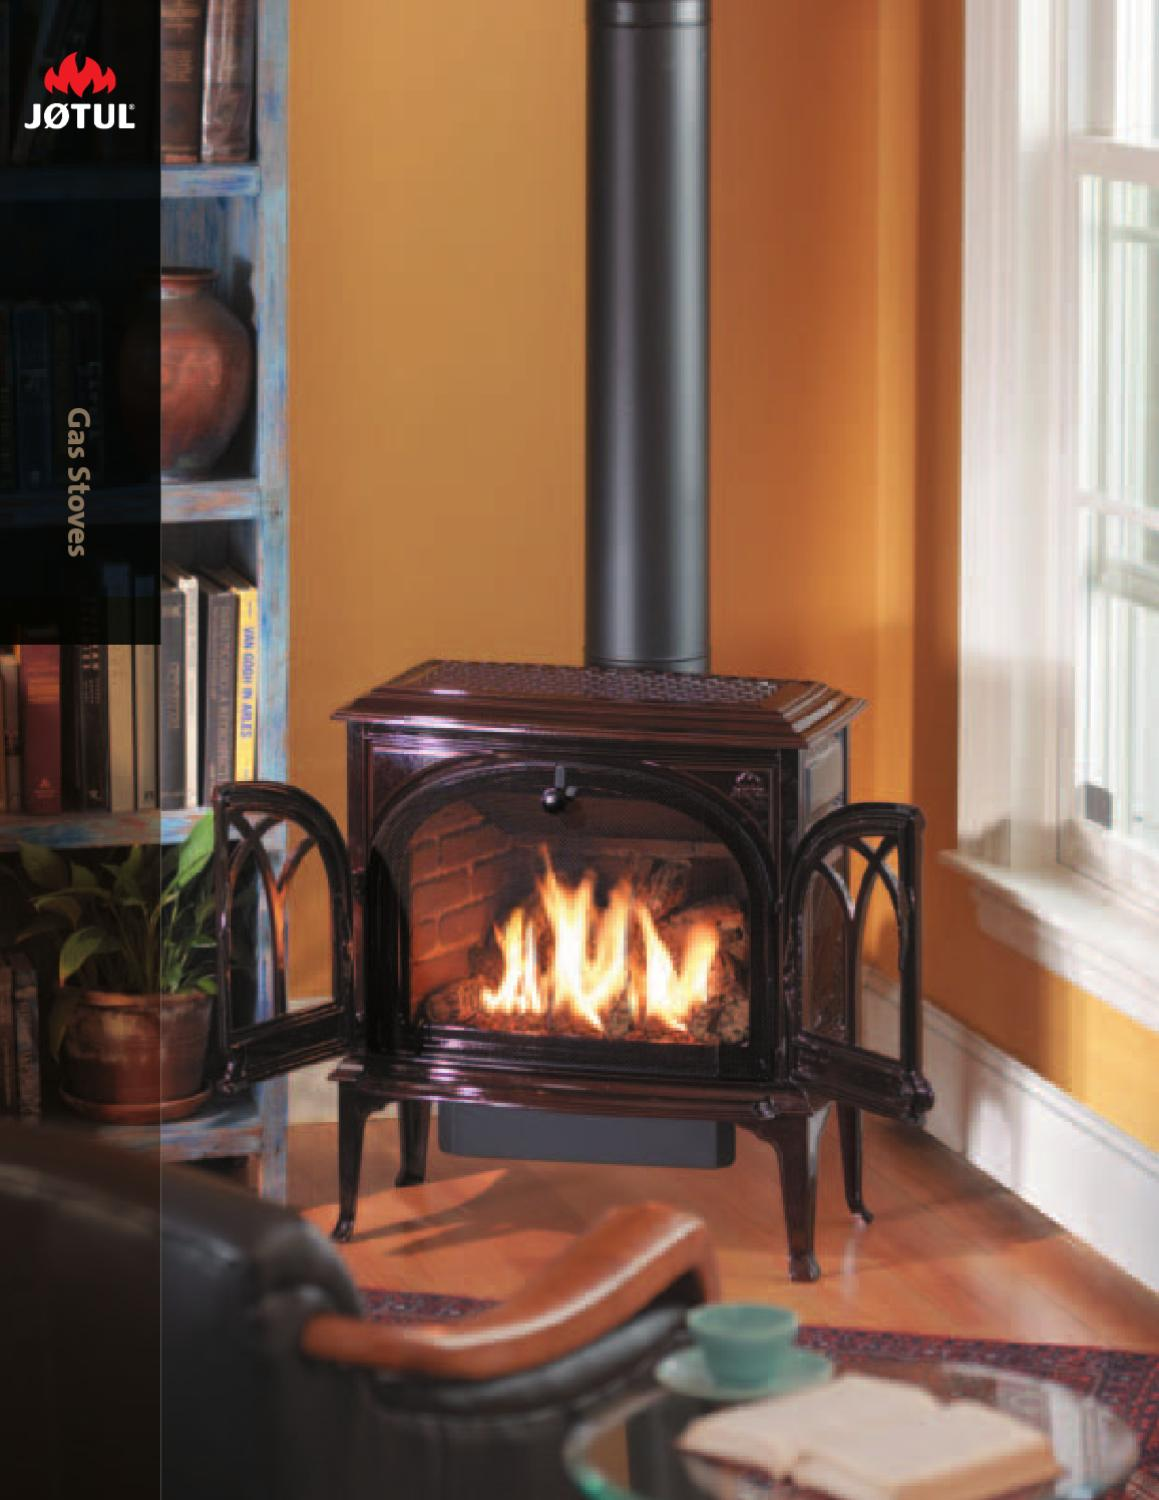 Jotul Vented Stoves By Smoke Fire Issuu